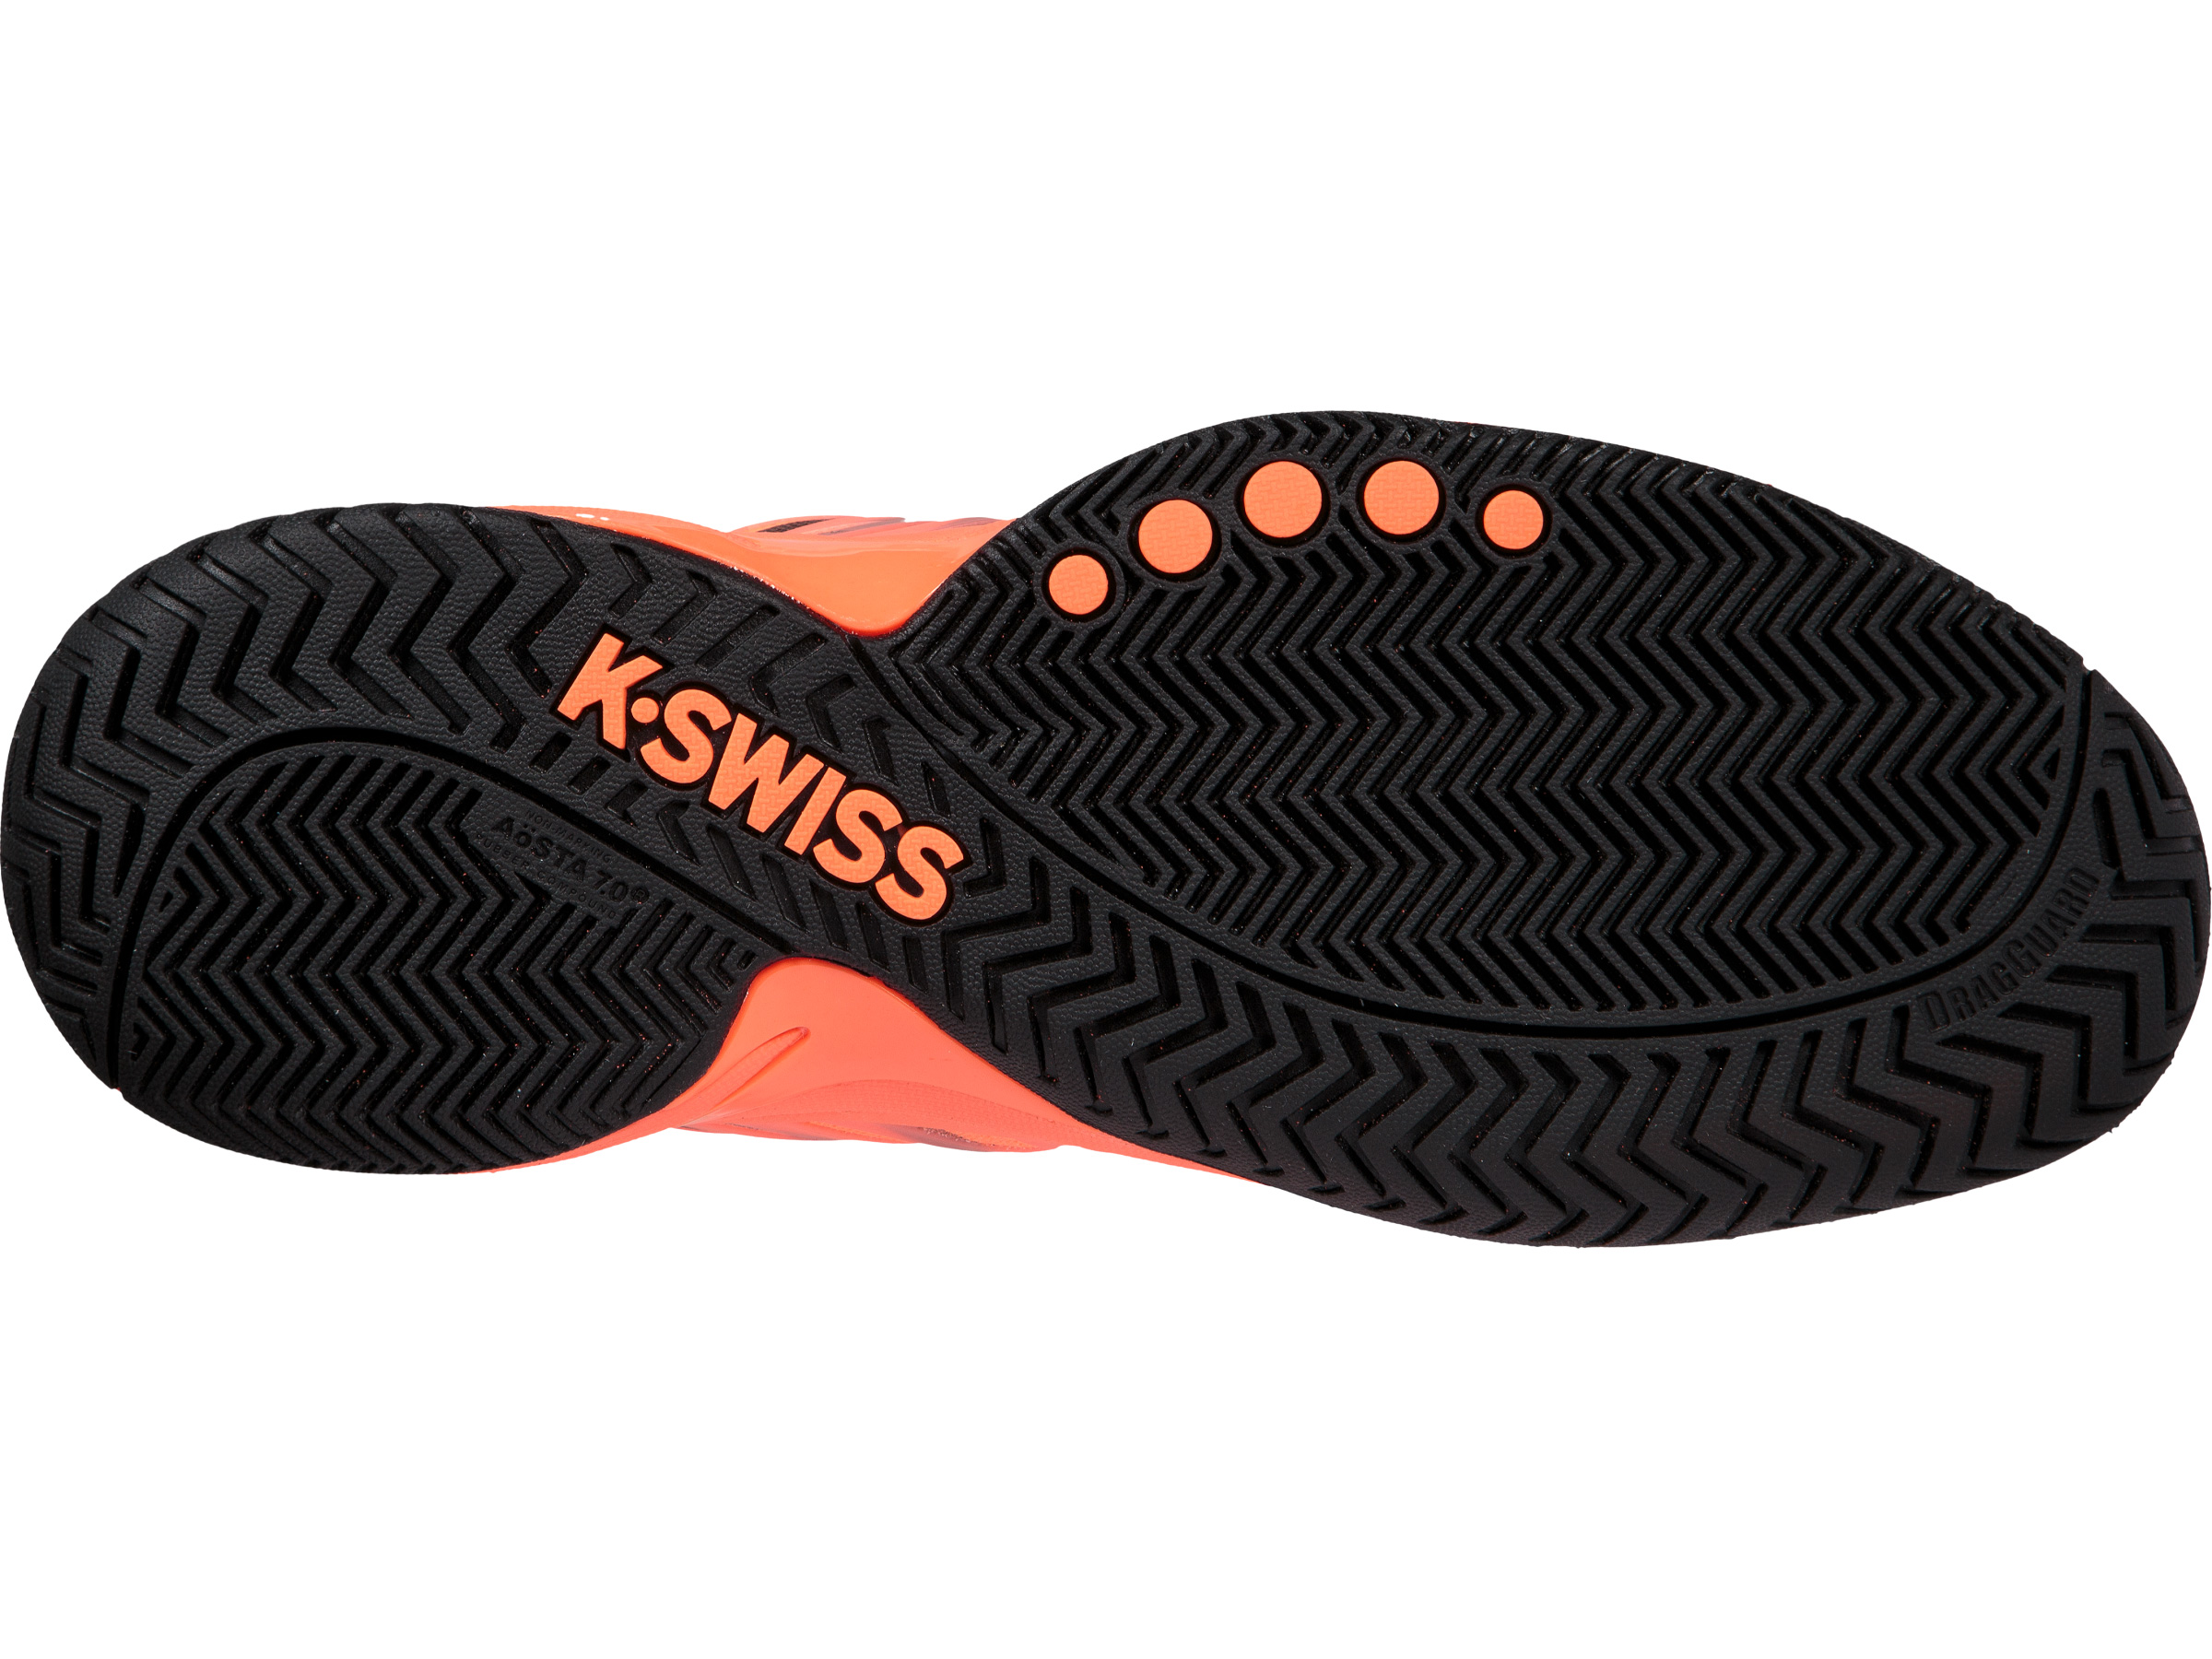 K_Swiss-Ultrashot_Tennisshoes_orange_men